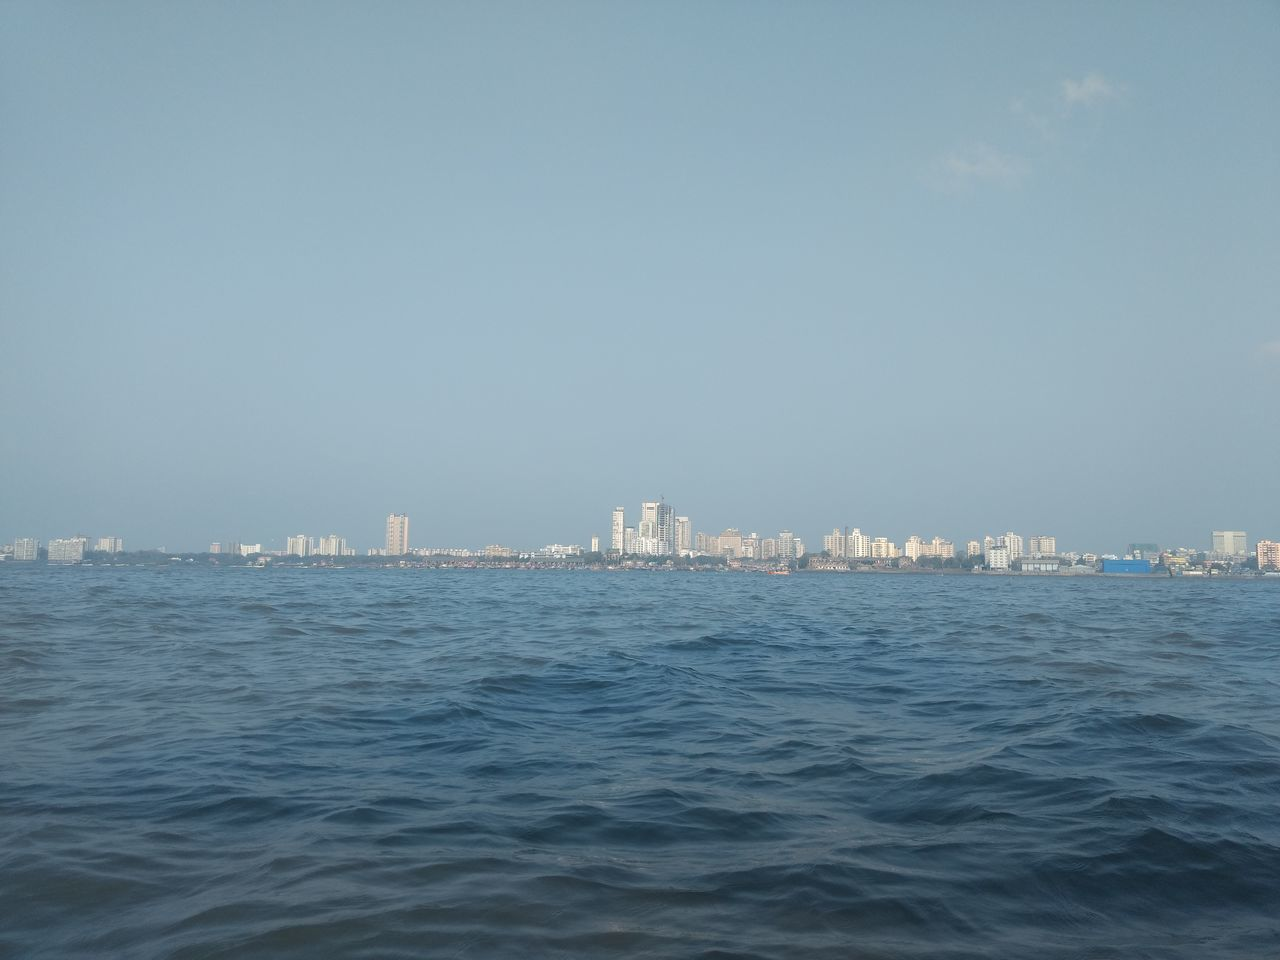 cityscape, city, skyscraper, architecture, sea, clear sky, water, building exterior, no people, modern, urban skyline, outdoors, residential, sky, nature, day